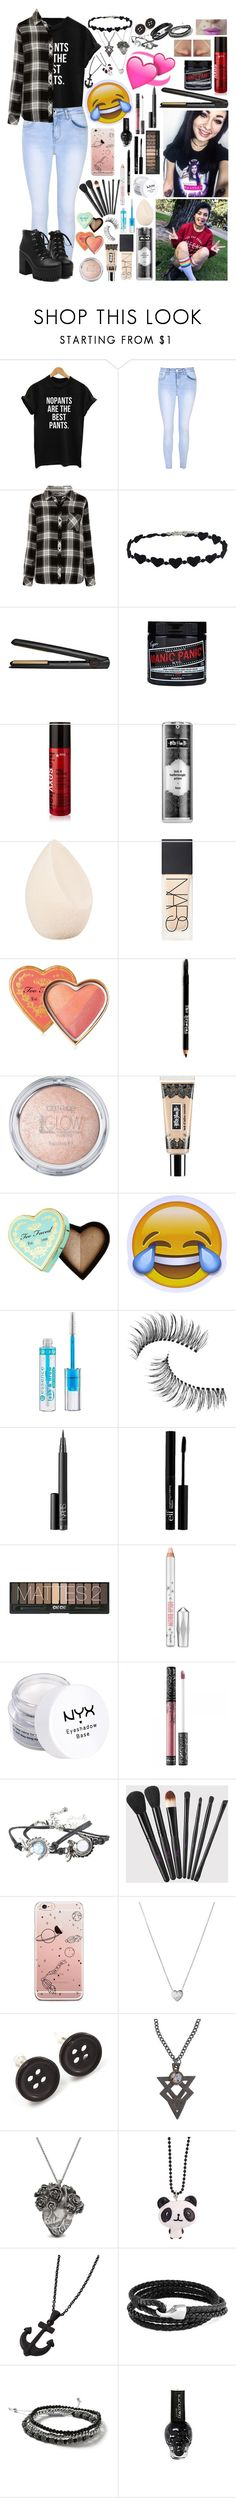 """HeyThereImShannon ~16~"" by i-am-the-one-and-only ❤ liked on Polyvore featuring Glamorous, Rails, GHD, Manic Panic NYC, Kat Von D, Christian Dior, NARS Cosmetics, Too Faced Cosmetics, Lord & Taylor and Essence"